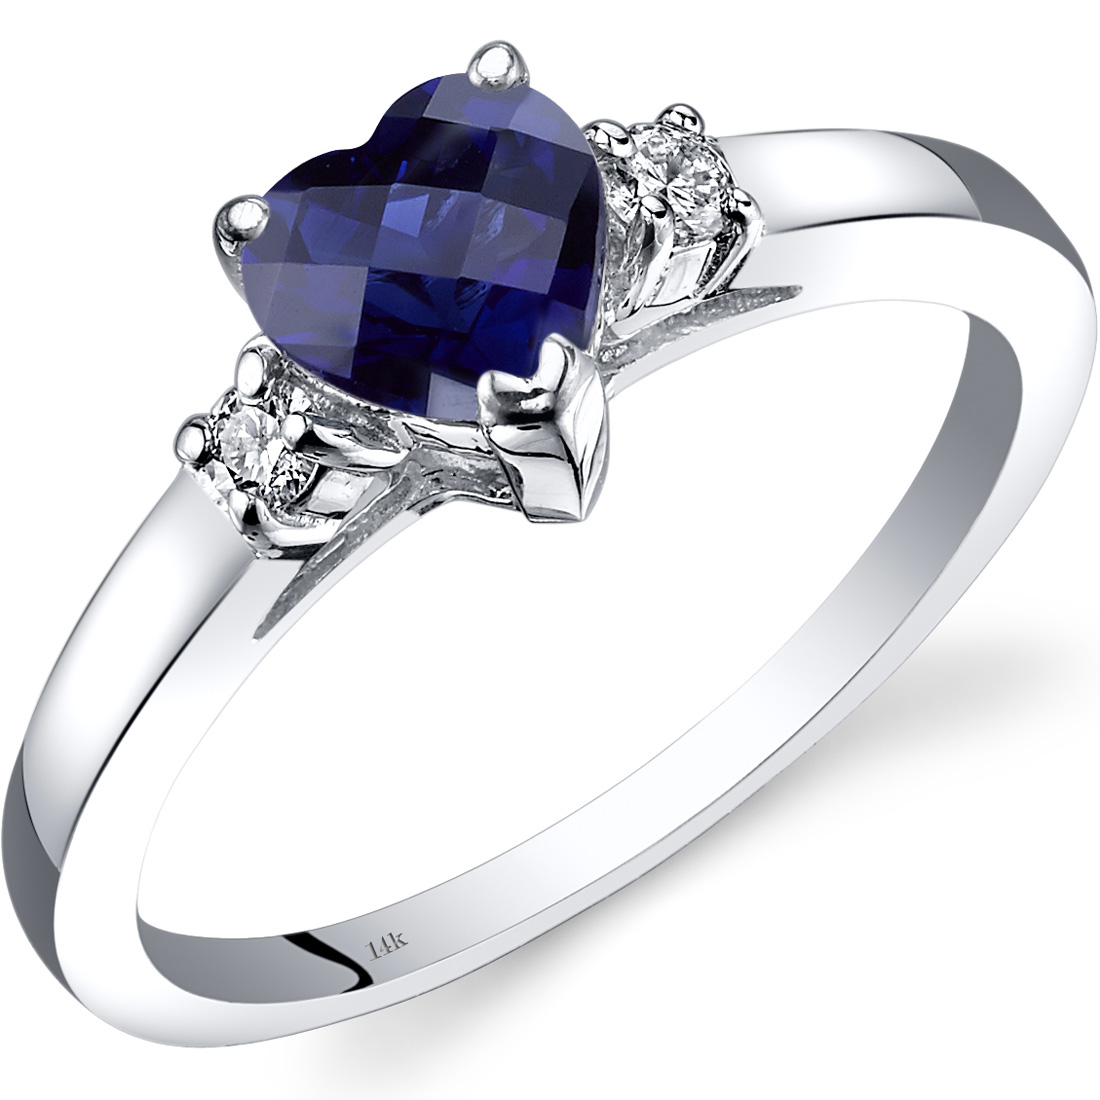 Peora 1 Carat T.G.W. Heart-Cut Created Blue Sapphire and Diamond Accent 14kt White Gold Ring Size 7 by